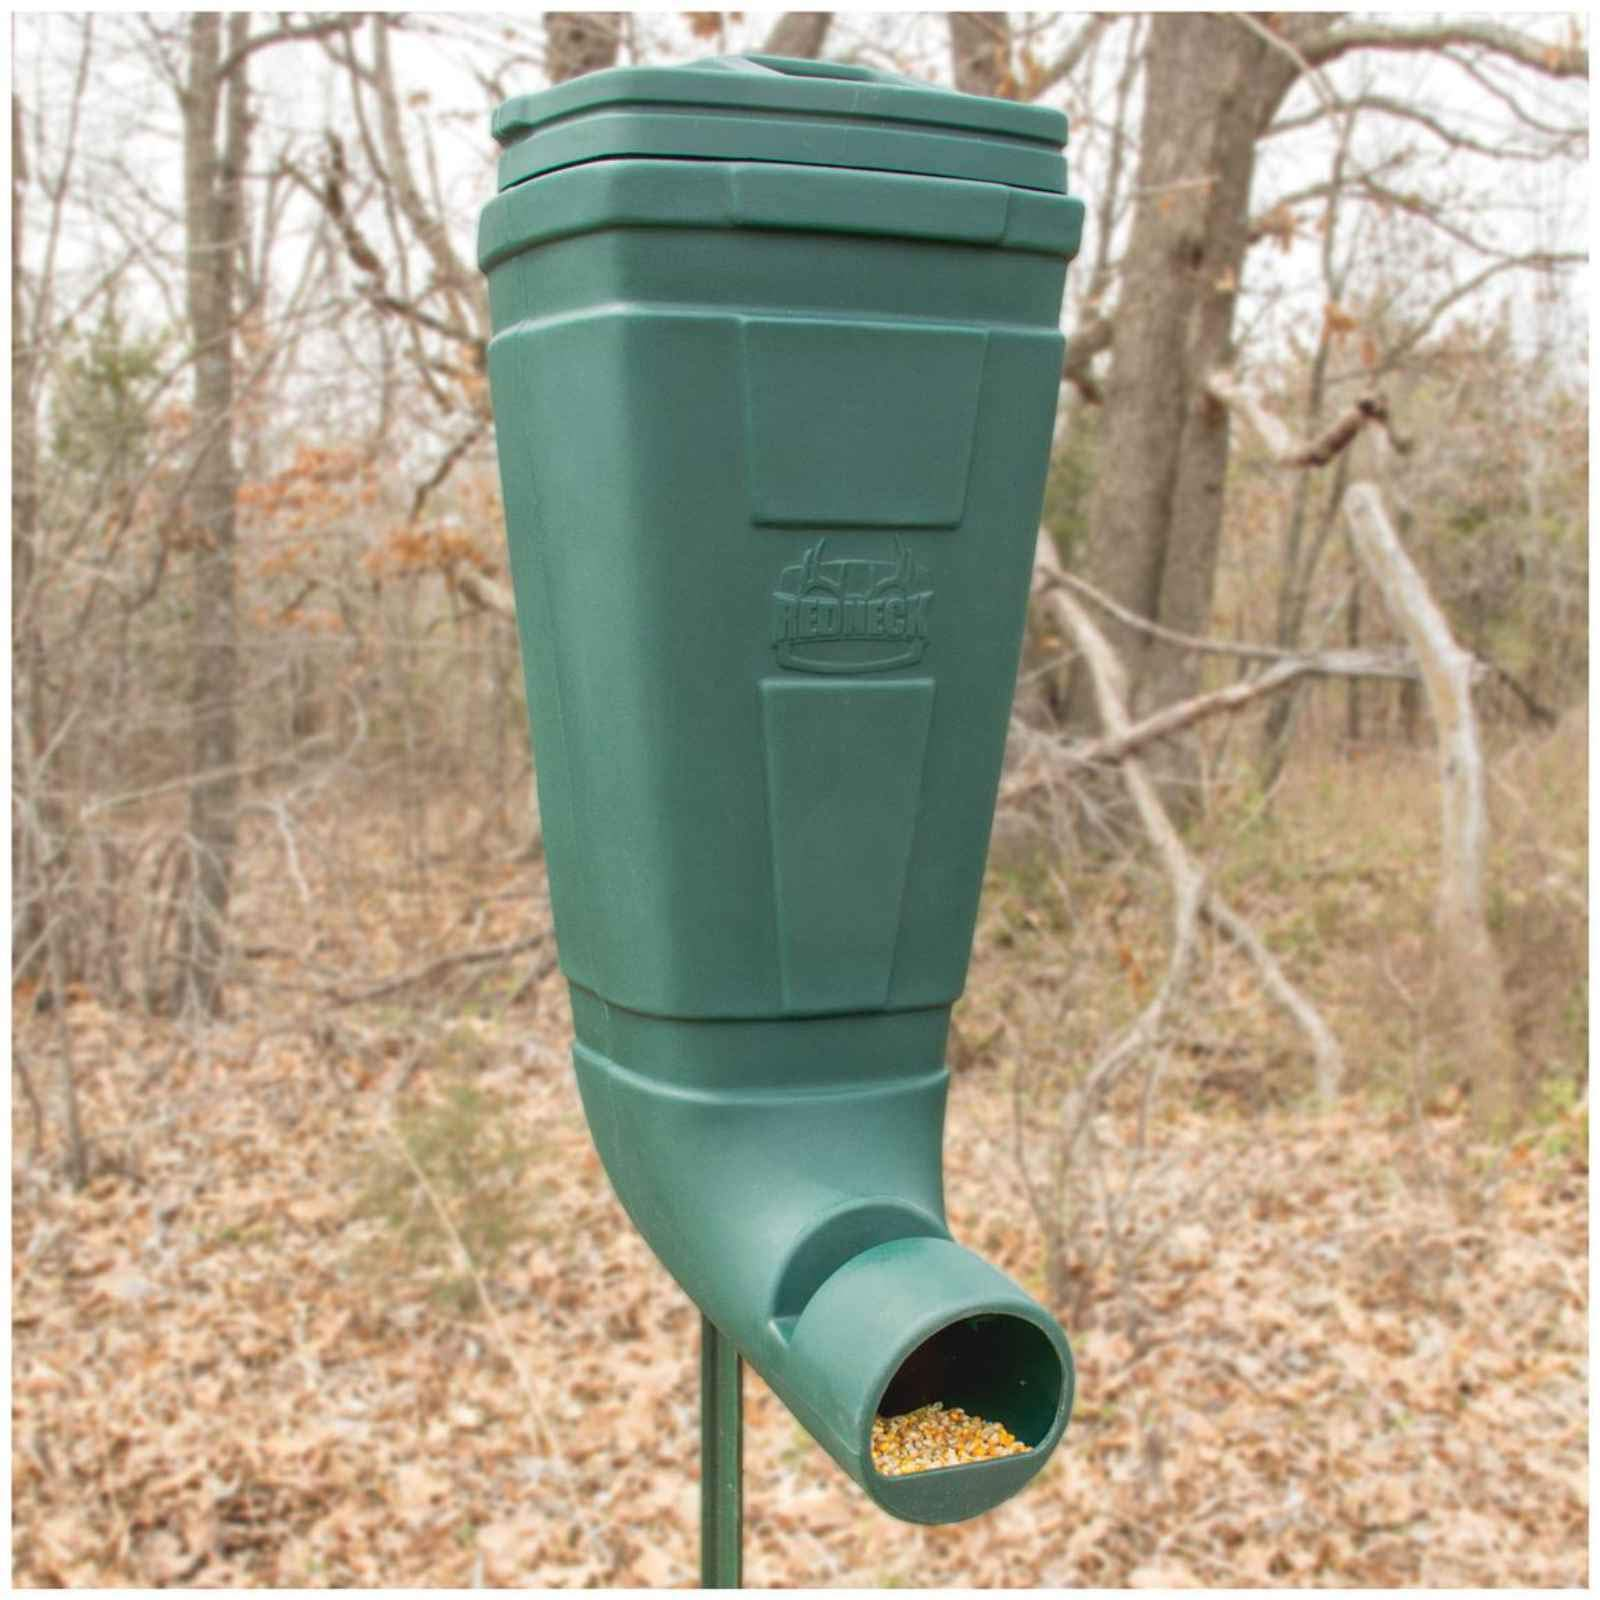 REDNEK Redneck Outdoors T-post Gravity Feeder